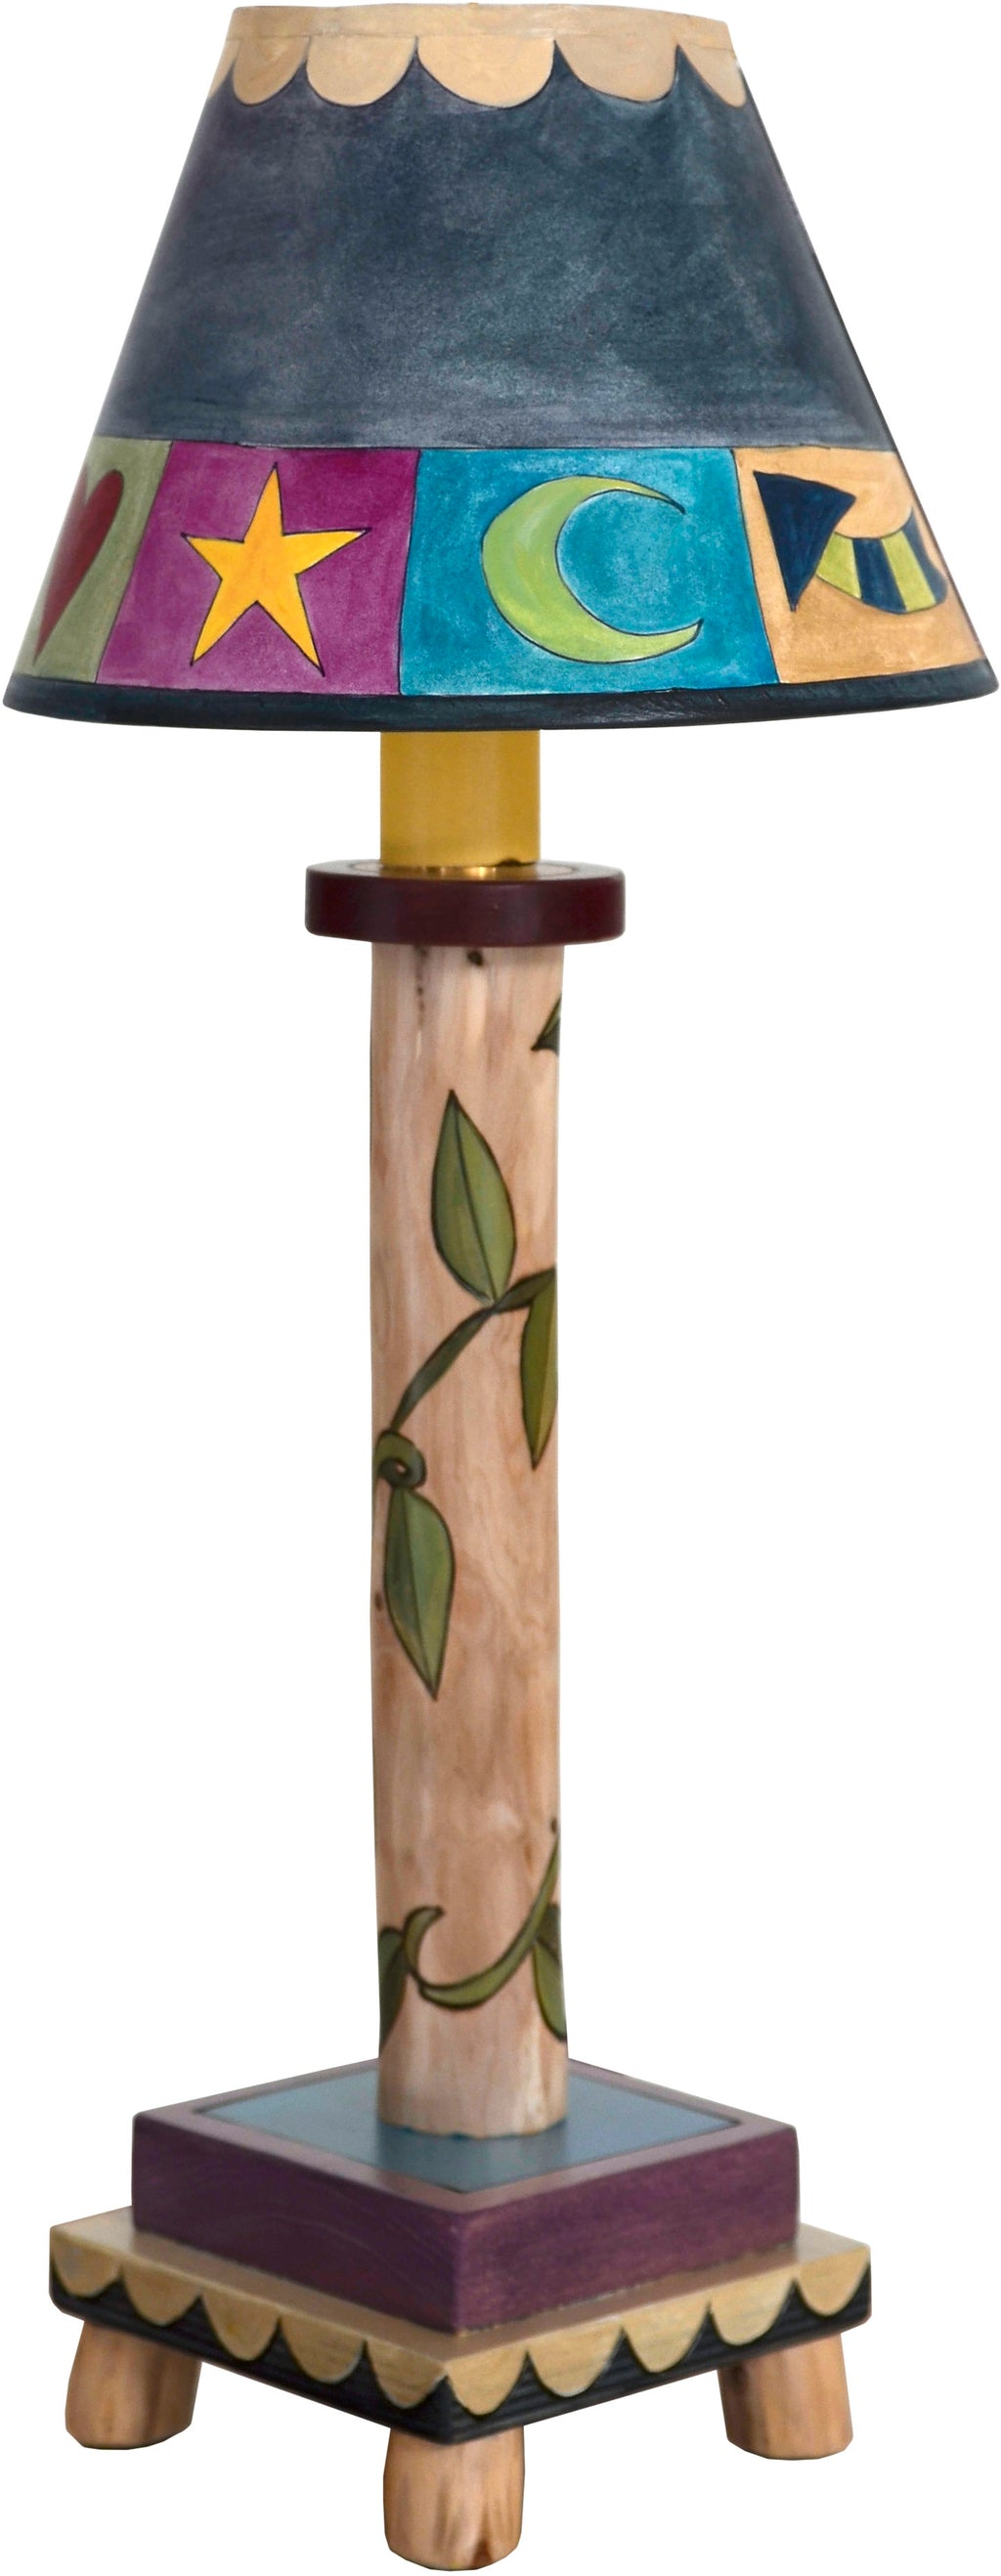 Log Candlestick Lamp –  Cute cool-toned boxed icon and wrapping vine motif